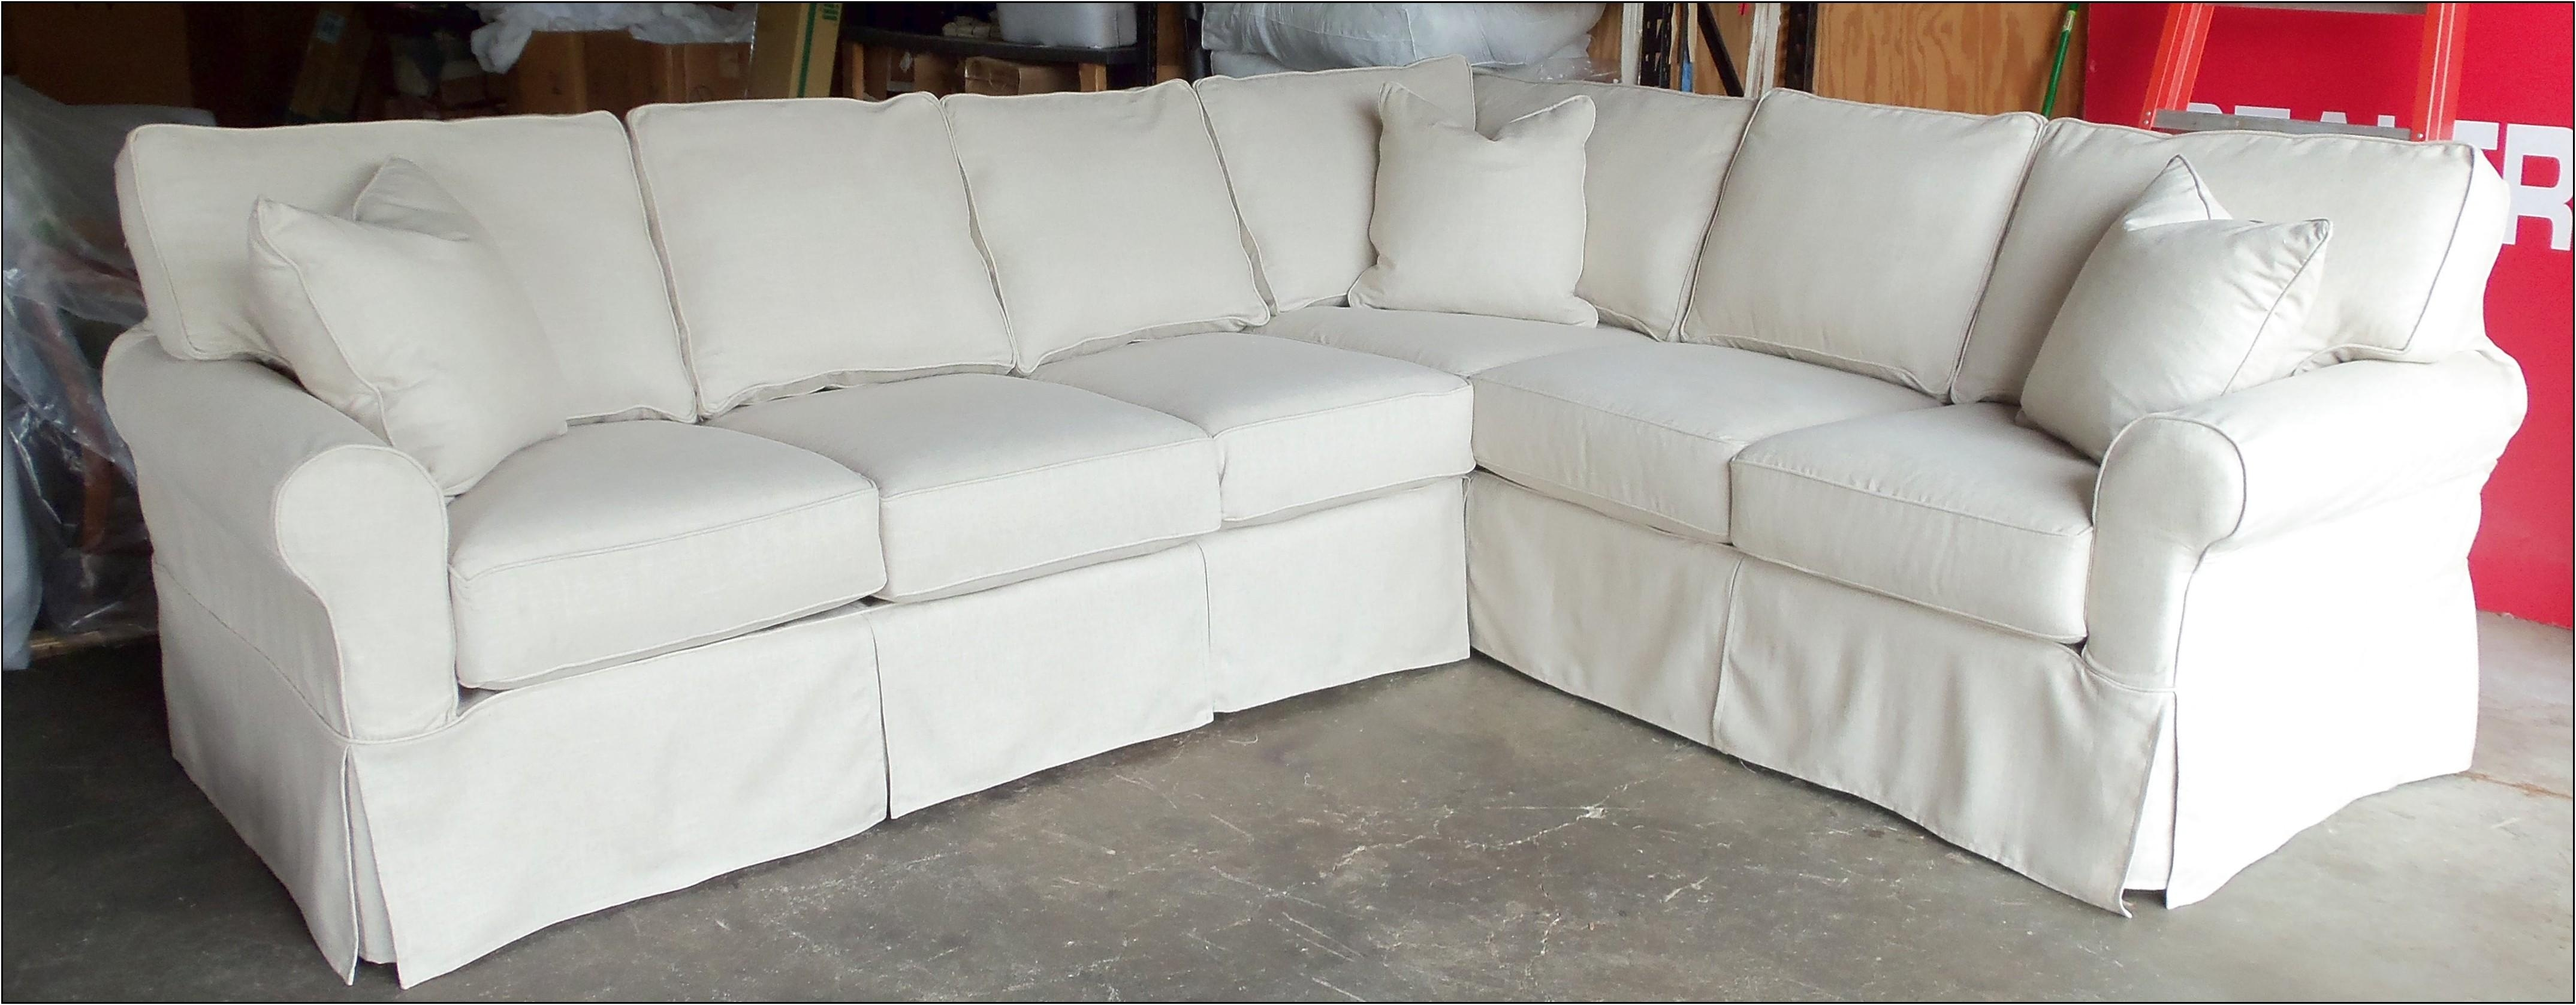 Featured Image of Slipcovers For Sectional Sofas With Recliners